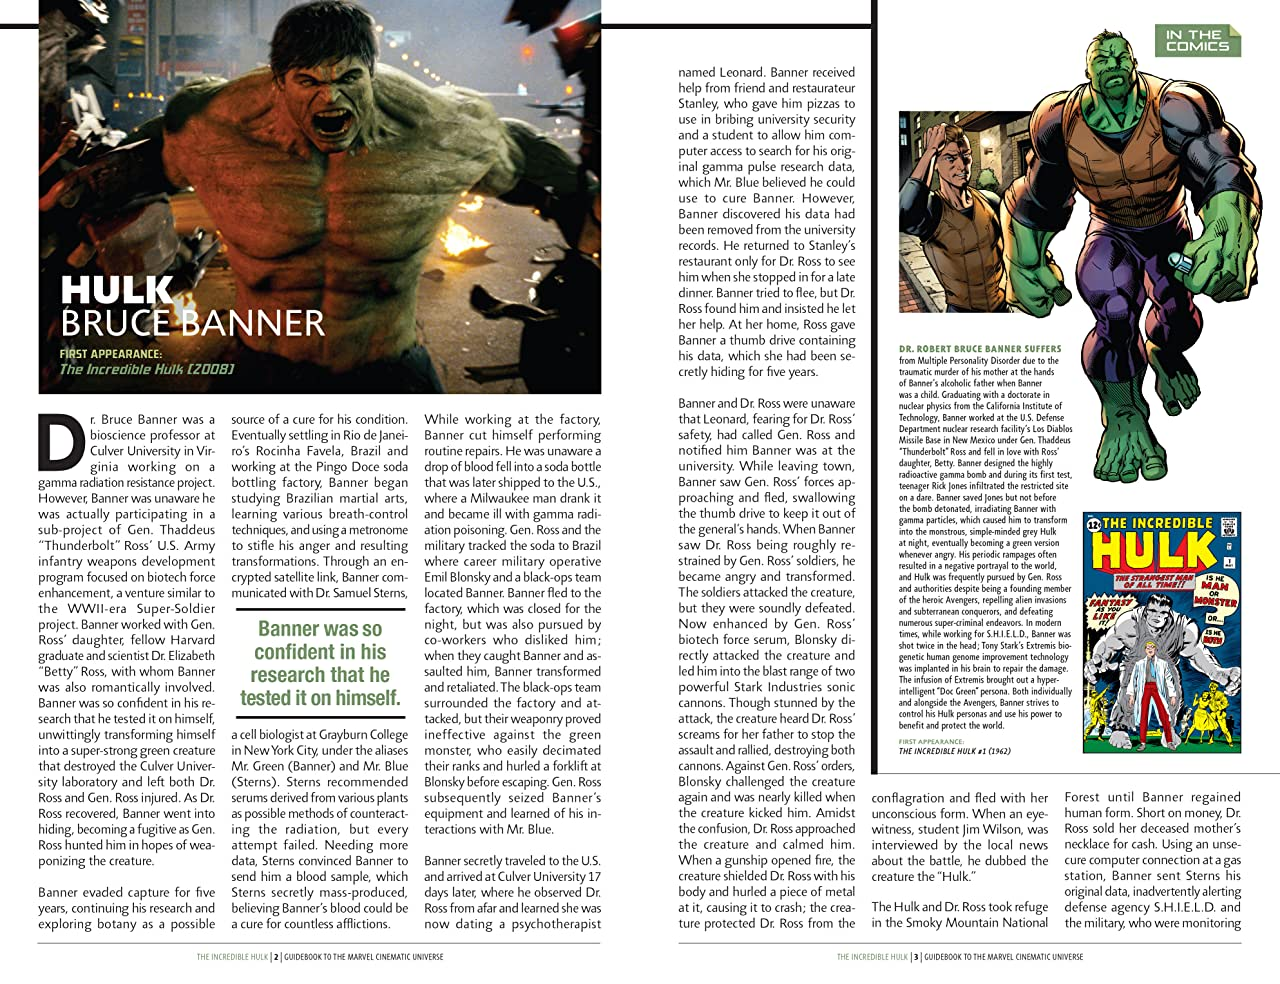 Guidebook to the Marvel Cinematic Universe #1: Marvel's Incredible Hulk